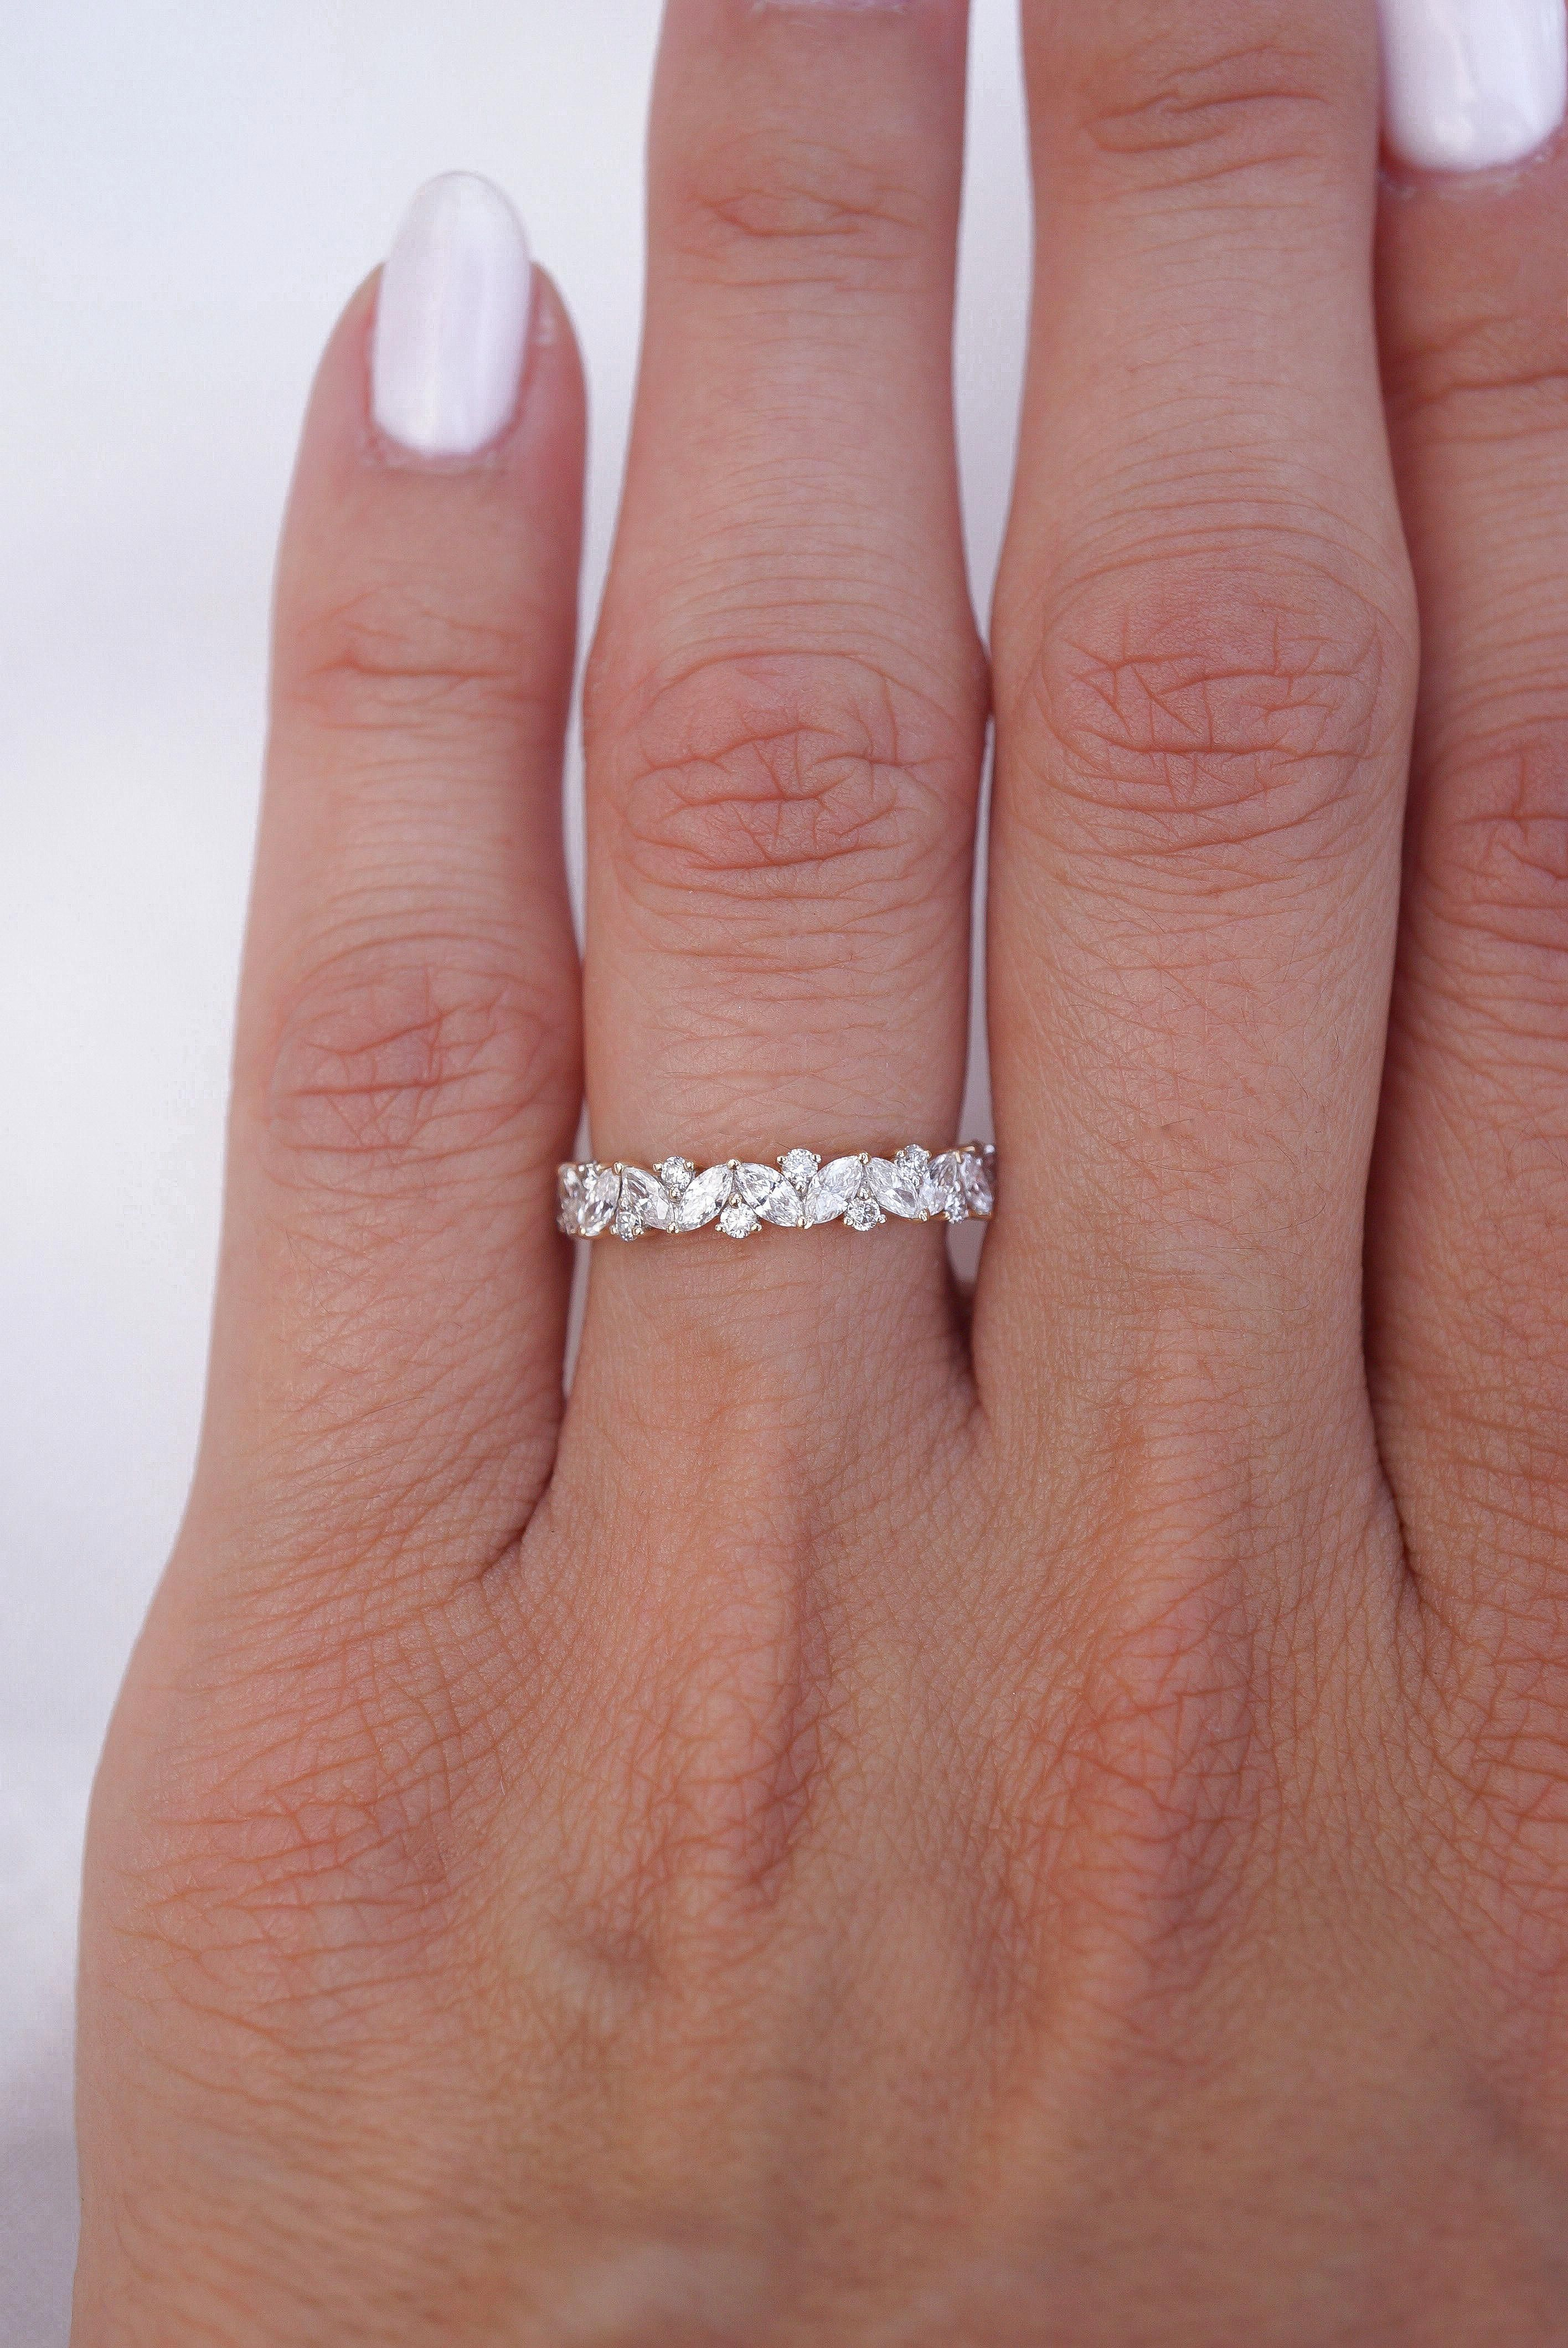 Dainty Marquise And Round Shape Diamond Wedding Band Silverrings Dainty Marquise And Round Shap In 2020 Wedding Ring Bands Diamond Wedding Bands Wedding Ring Sets